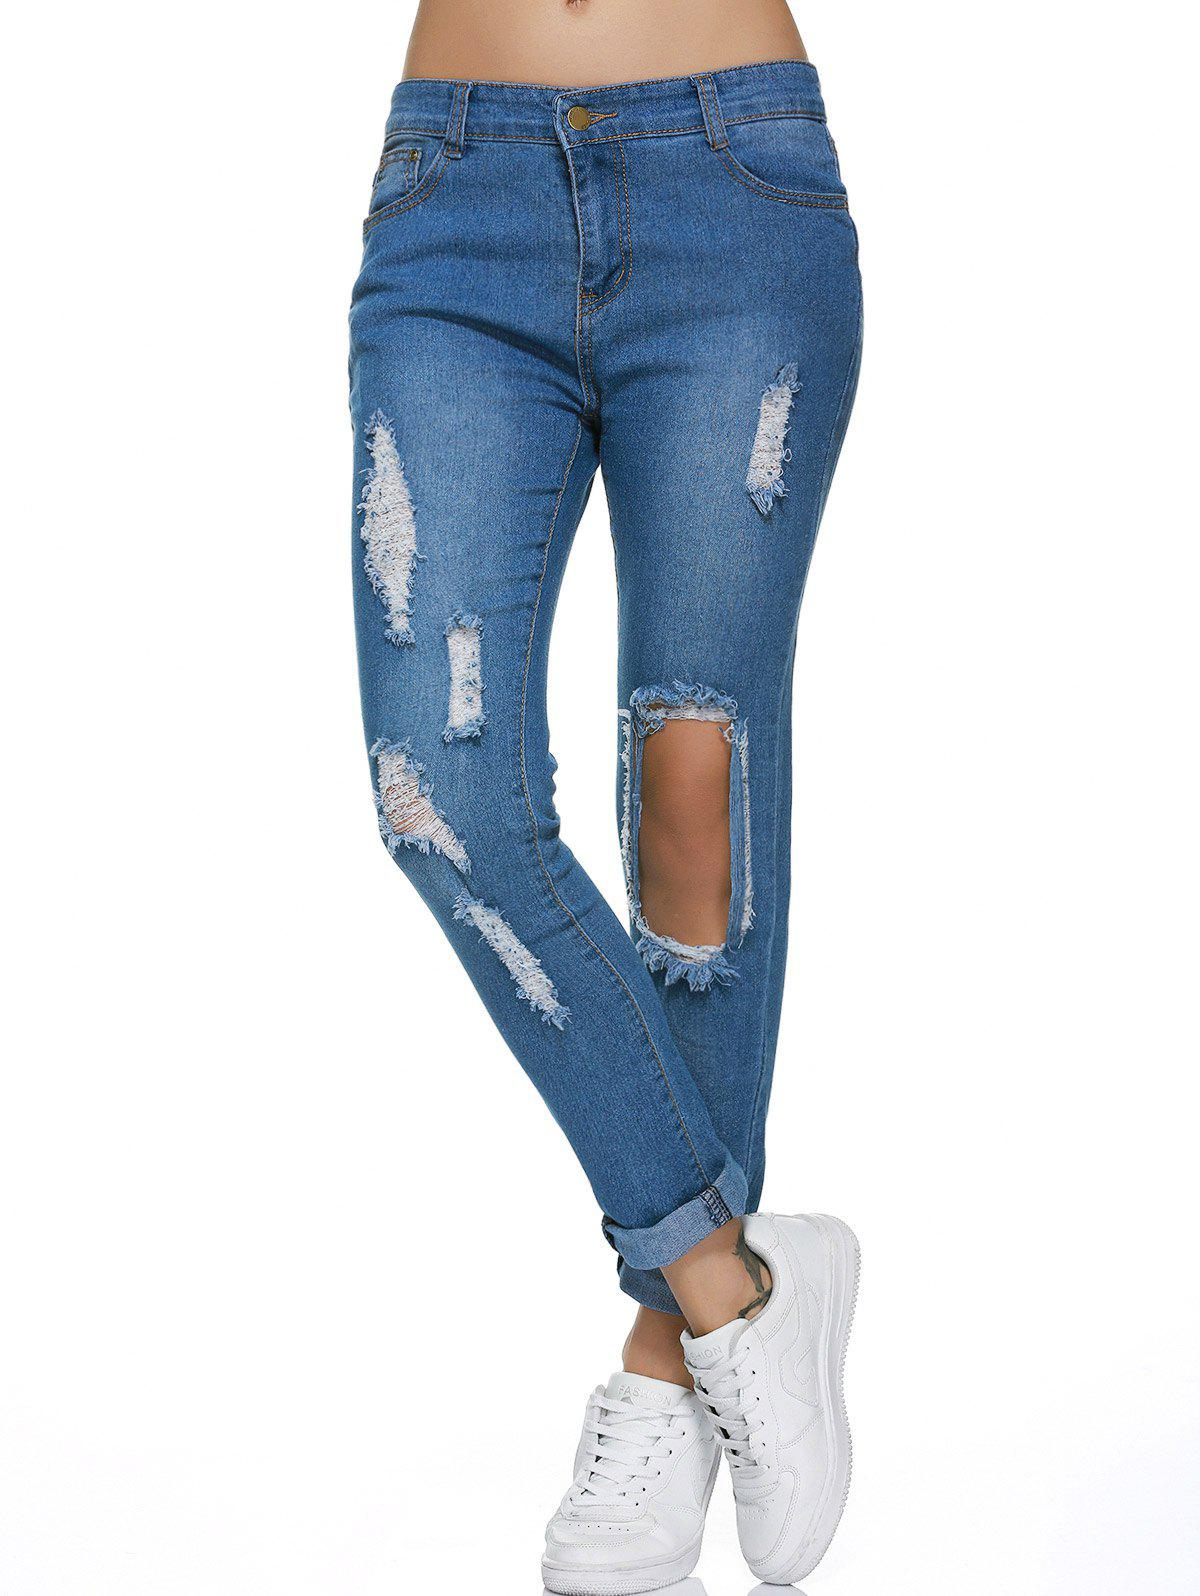 Broken Hole Design Distressed Jeans - BLUE XL